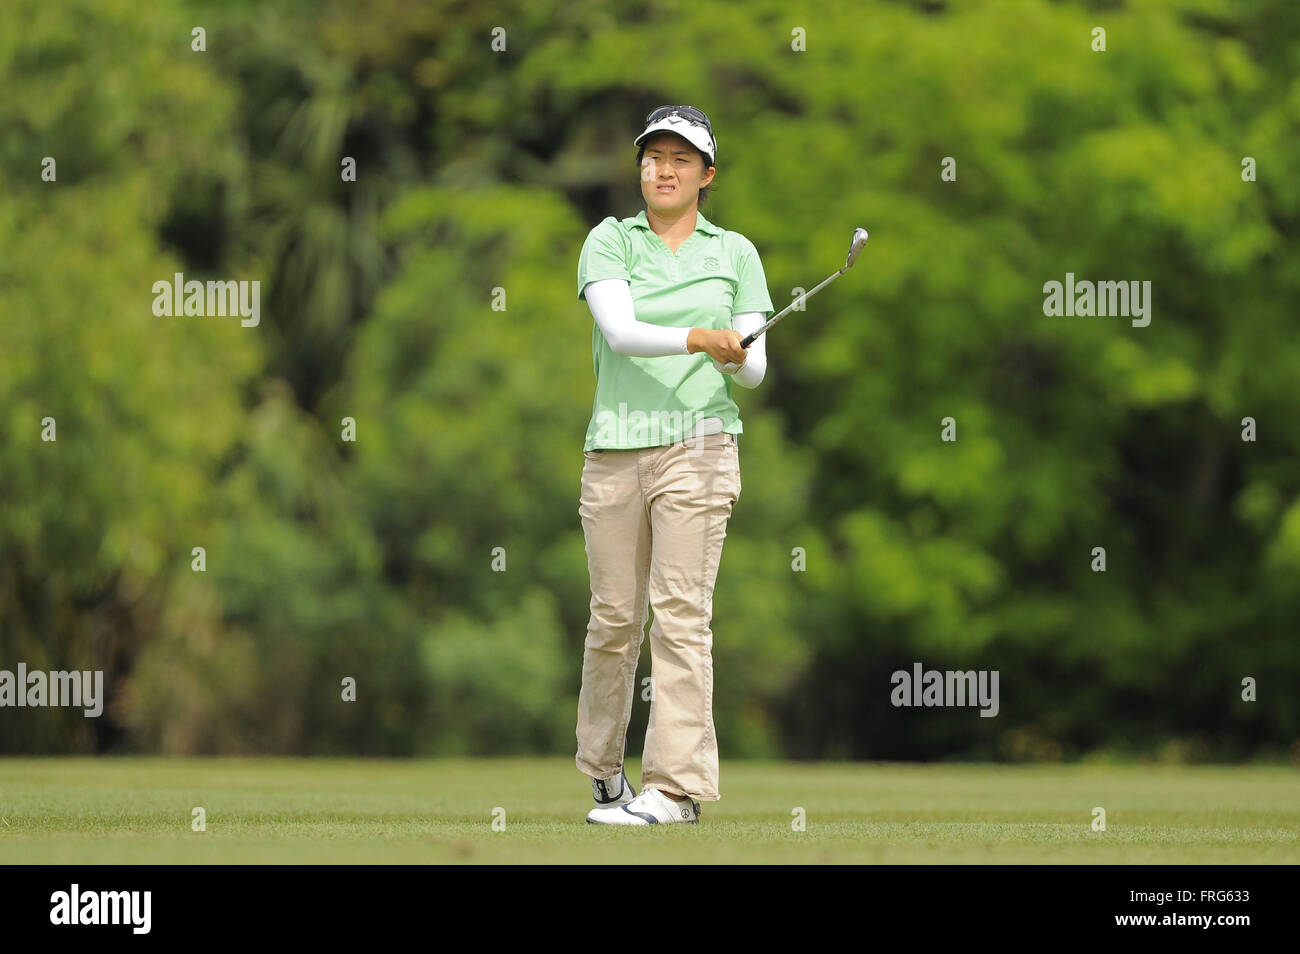 Longwood, Florida, USA. 31st Mar, 2014. Yueer Cindy Feng during the final round of the IOA Golf Classic at Alaqua - Stock Image